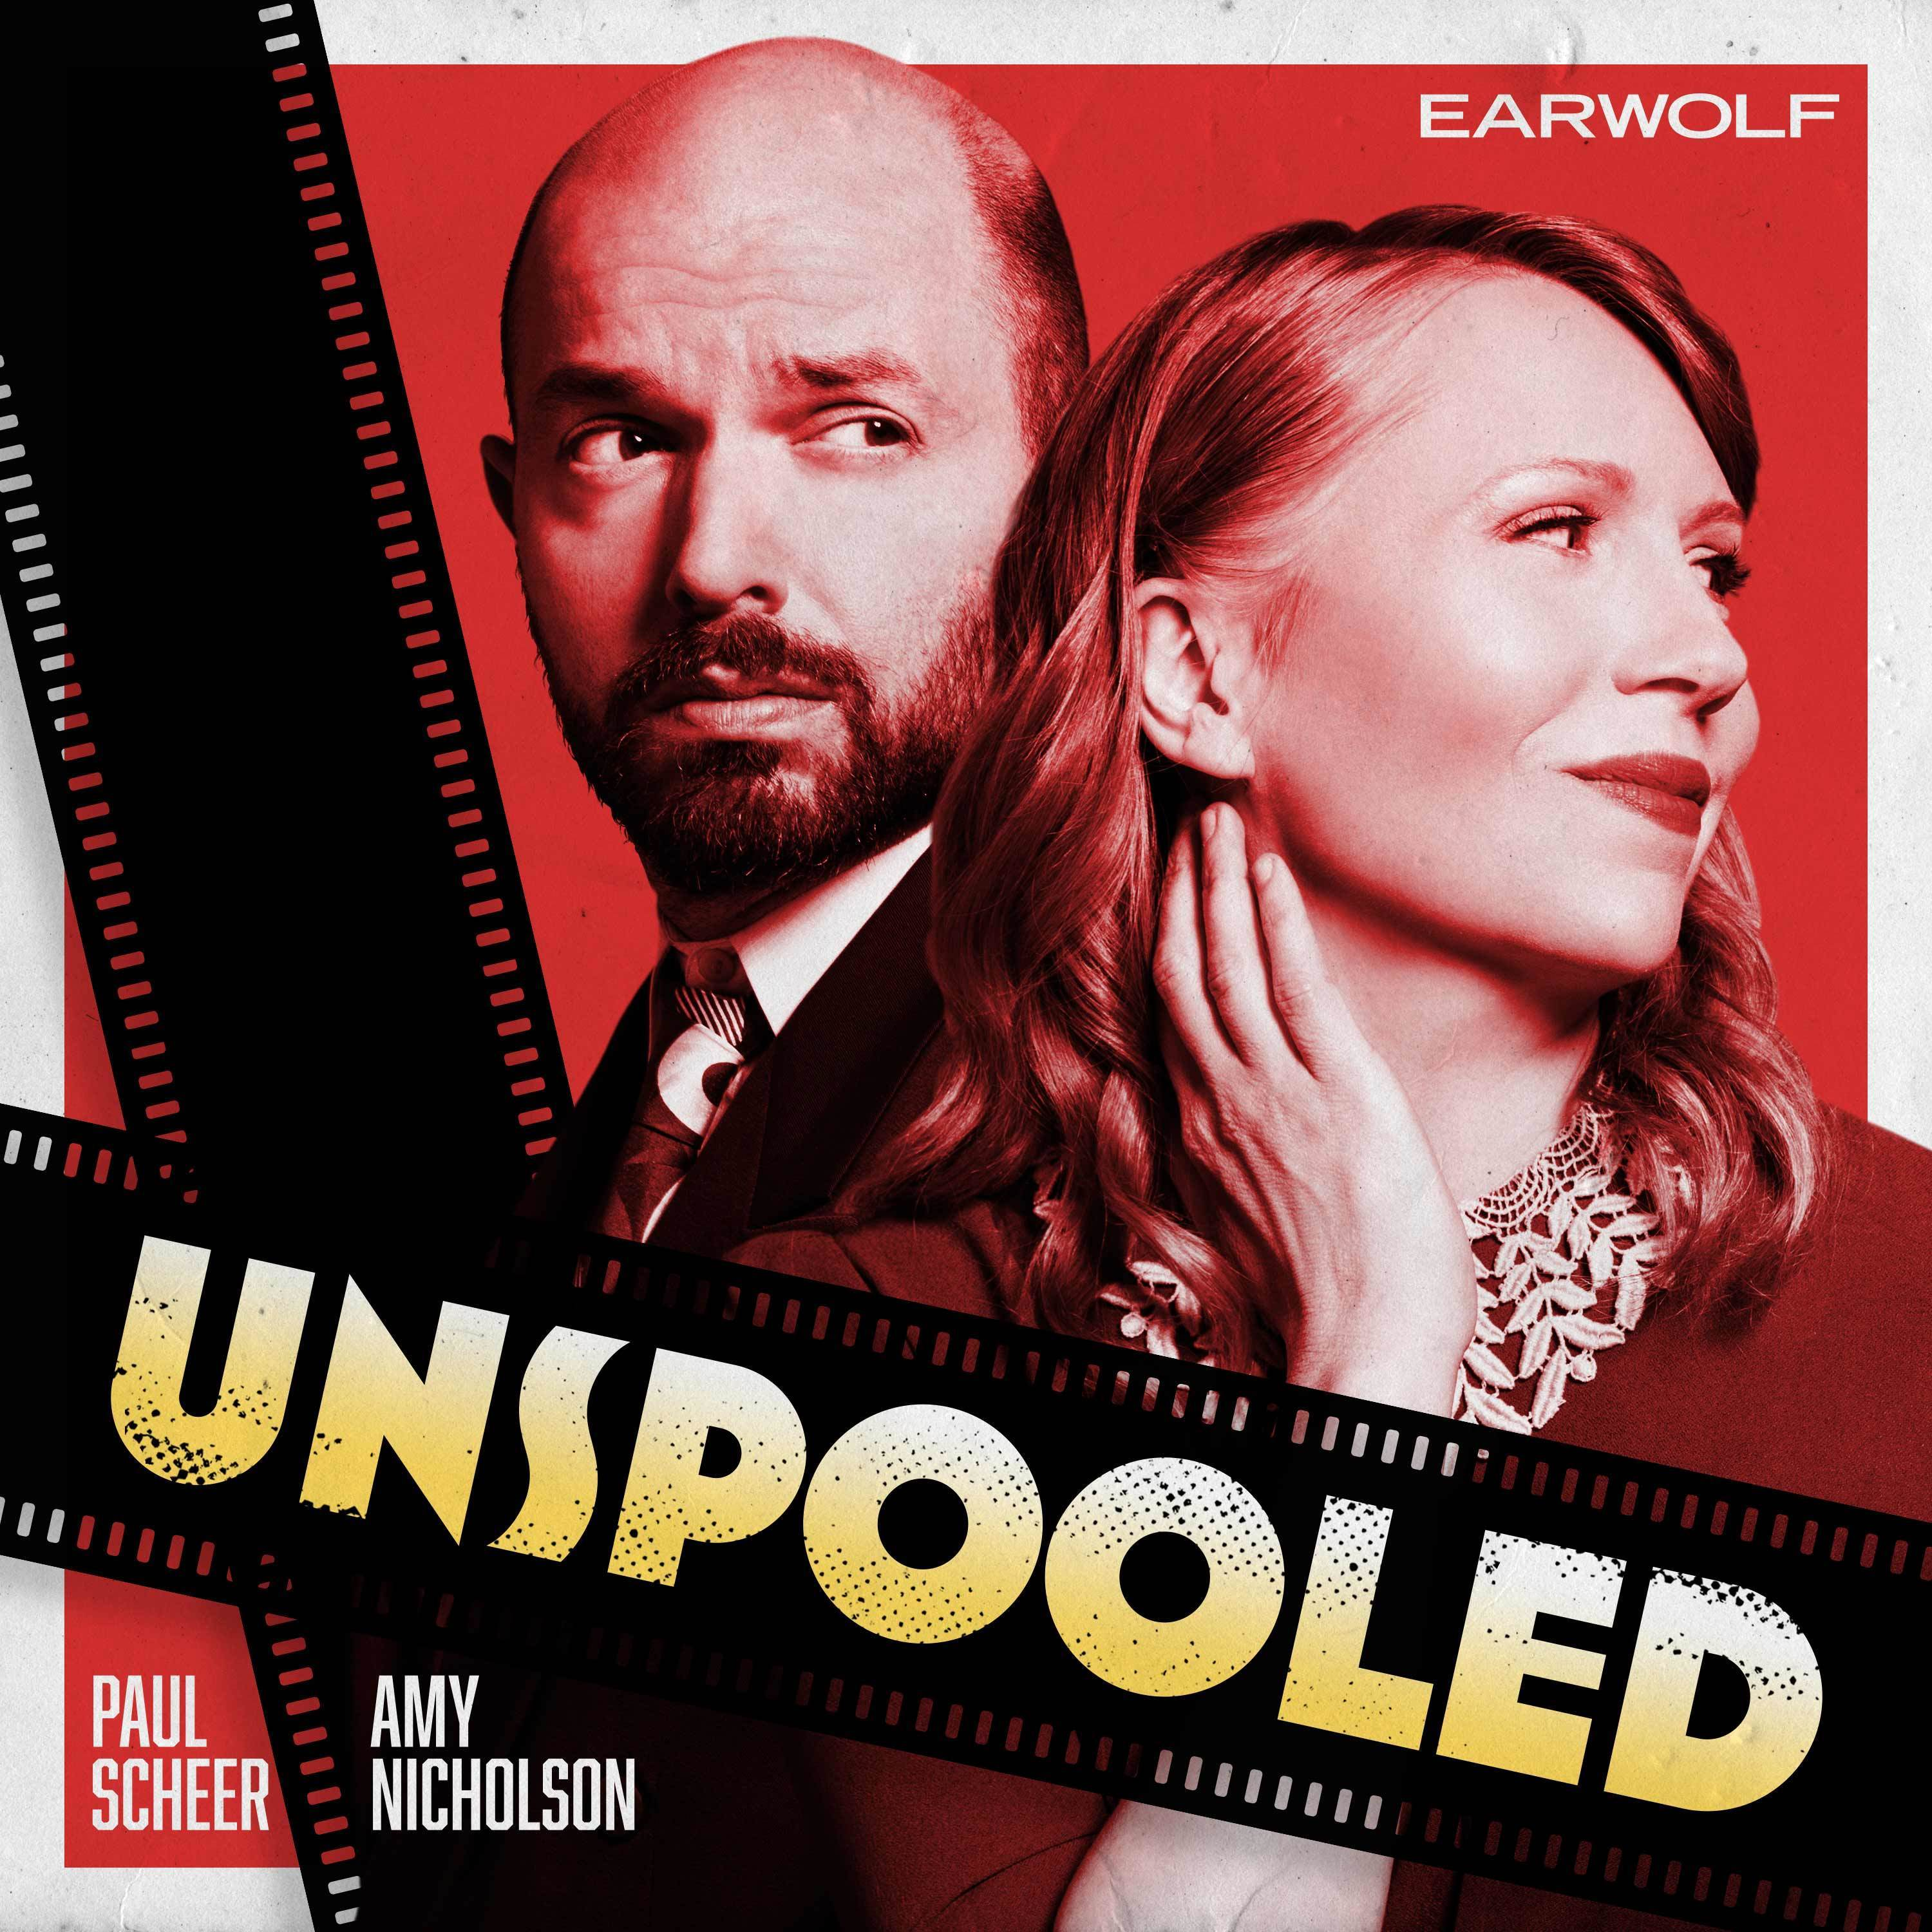 Unspooled Podcast image with paul Scheer and Amy Nicholson